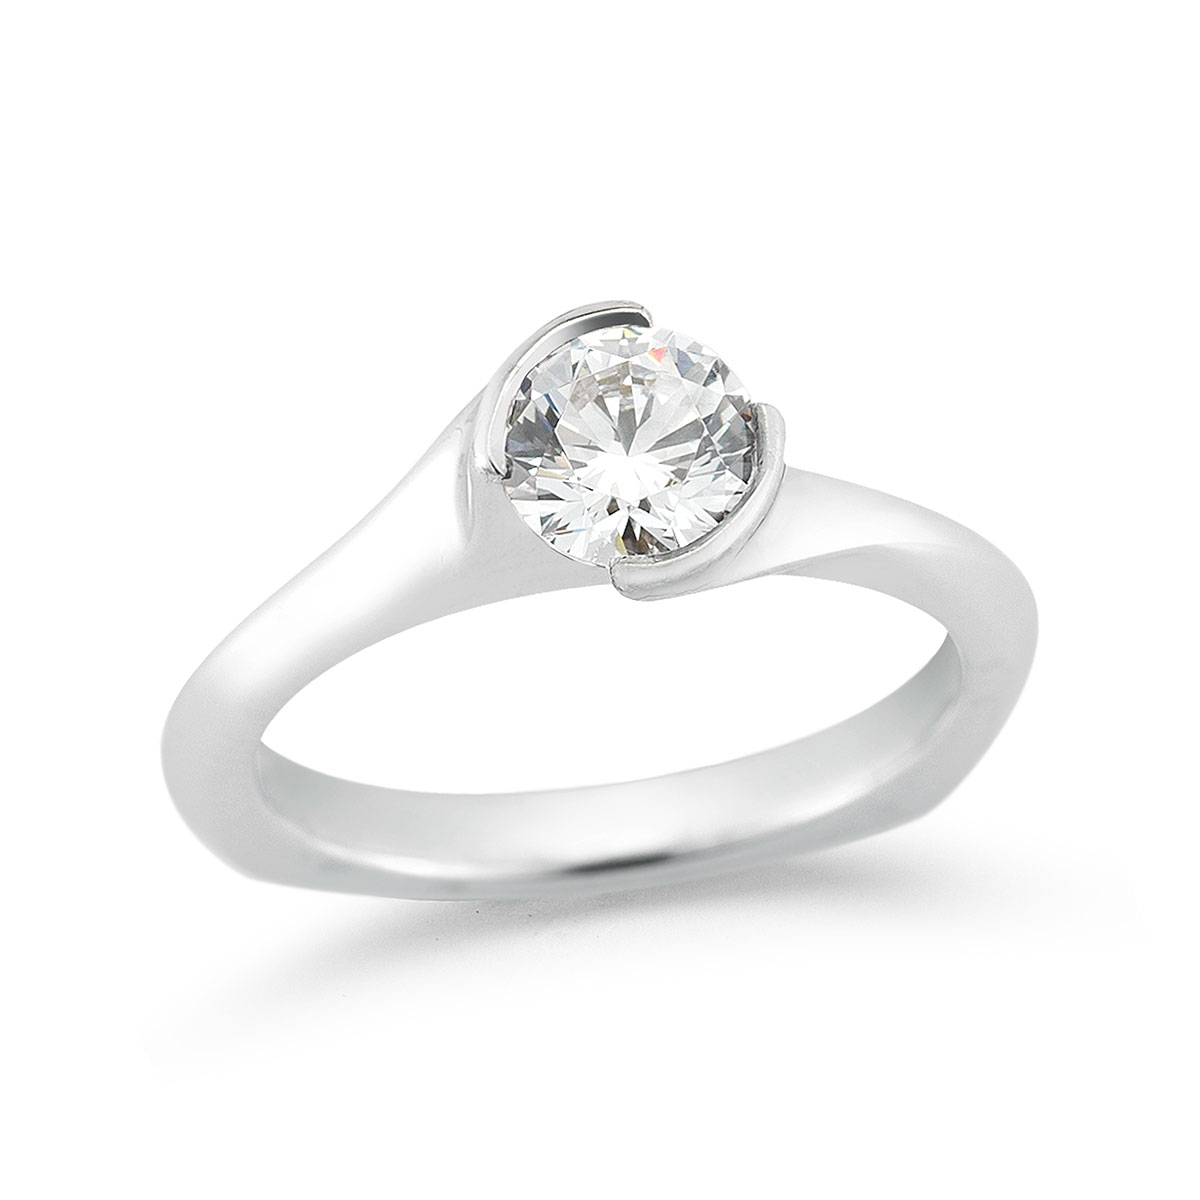 WR0202 Twist Engagement Ring